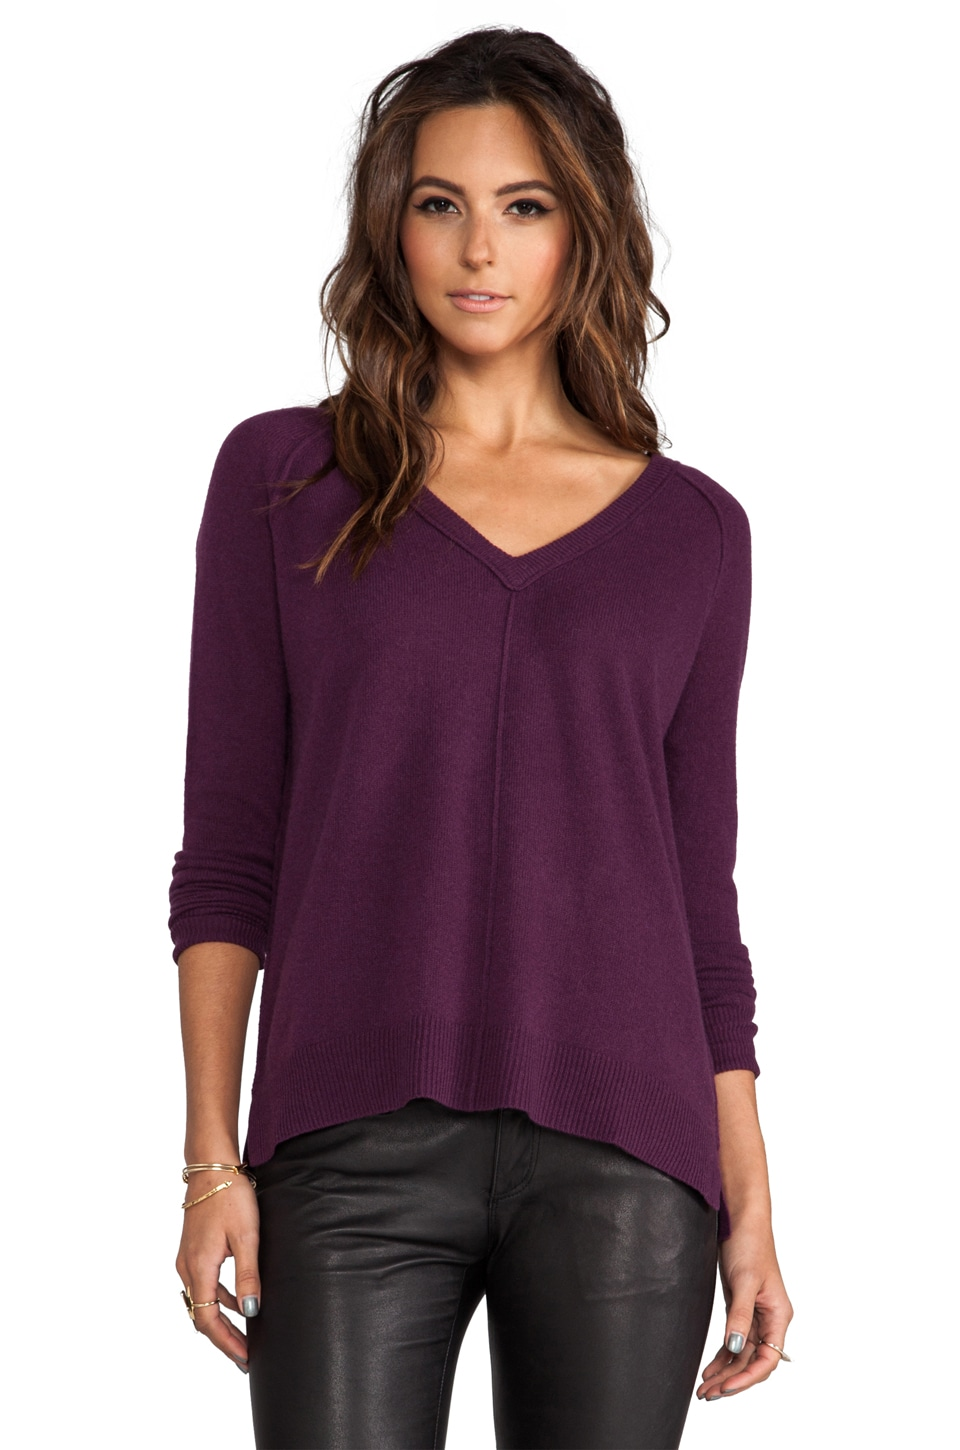 Autumn Cashmere Relaxed V-Neck Pullover in Port